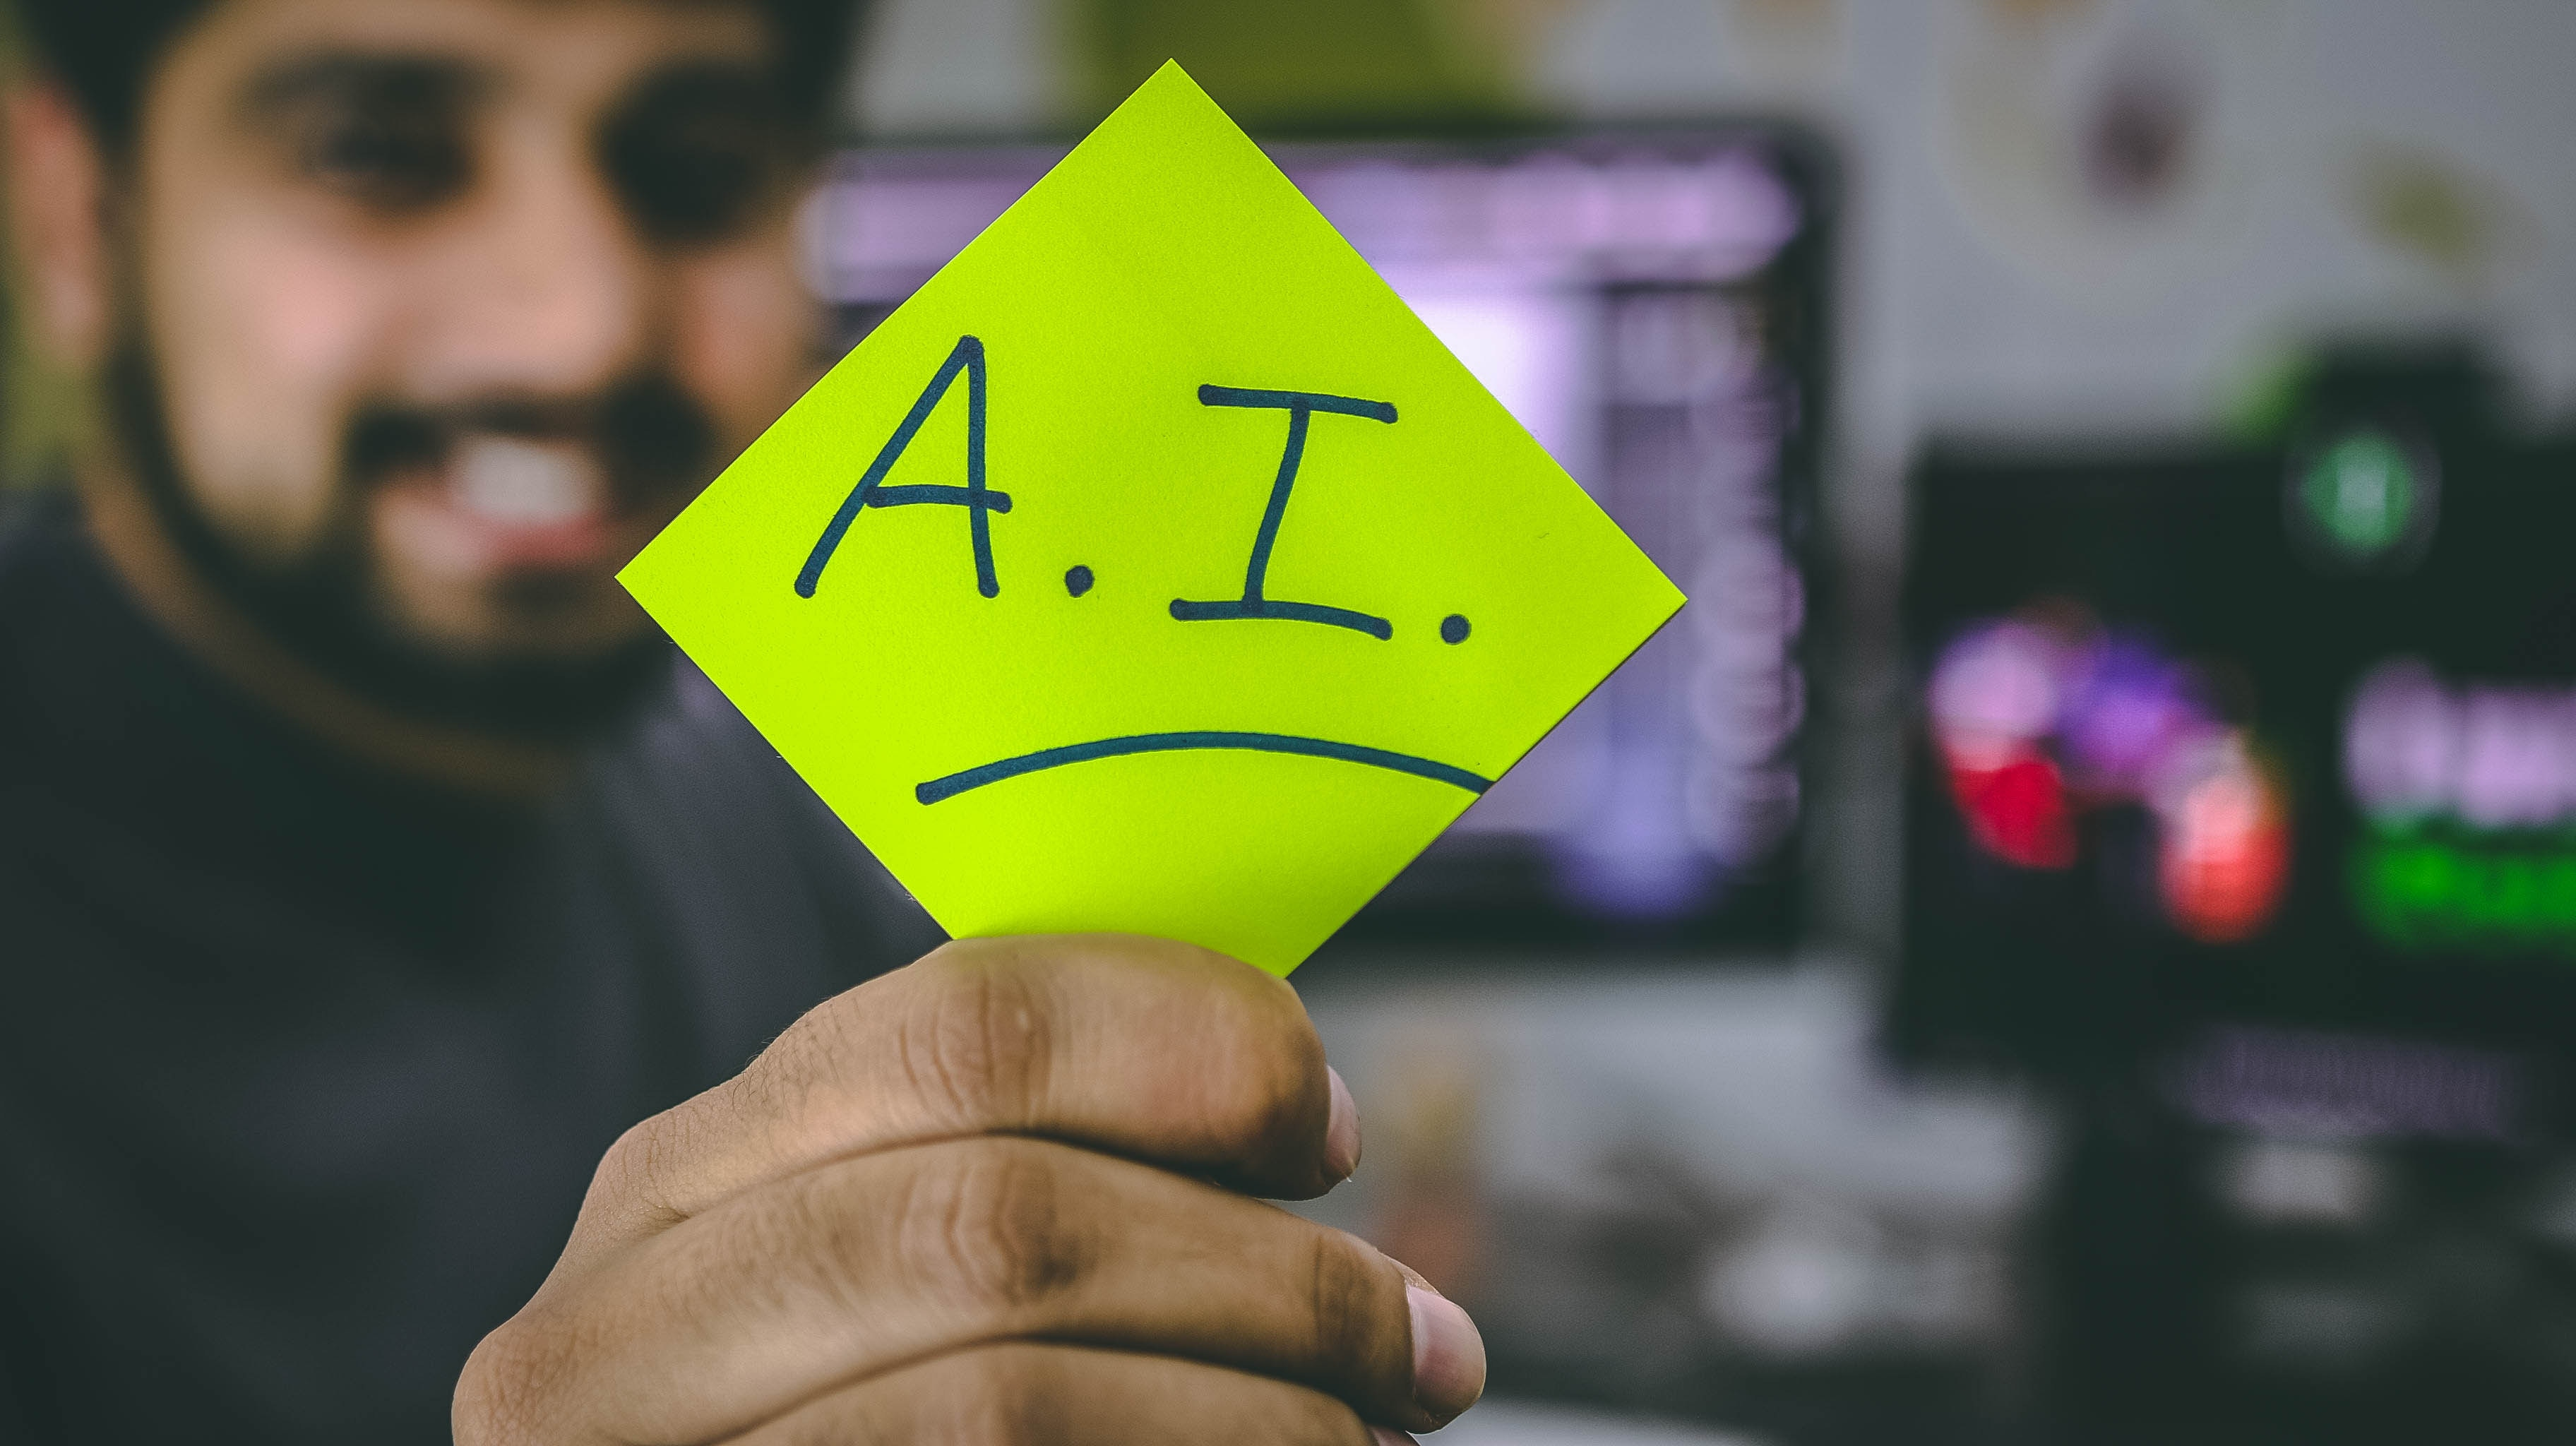 AI written on a sticky note - artificial intelligence